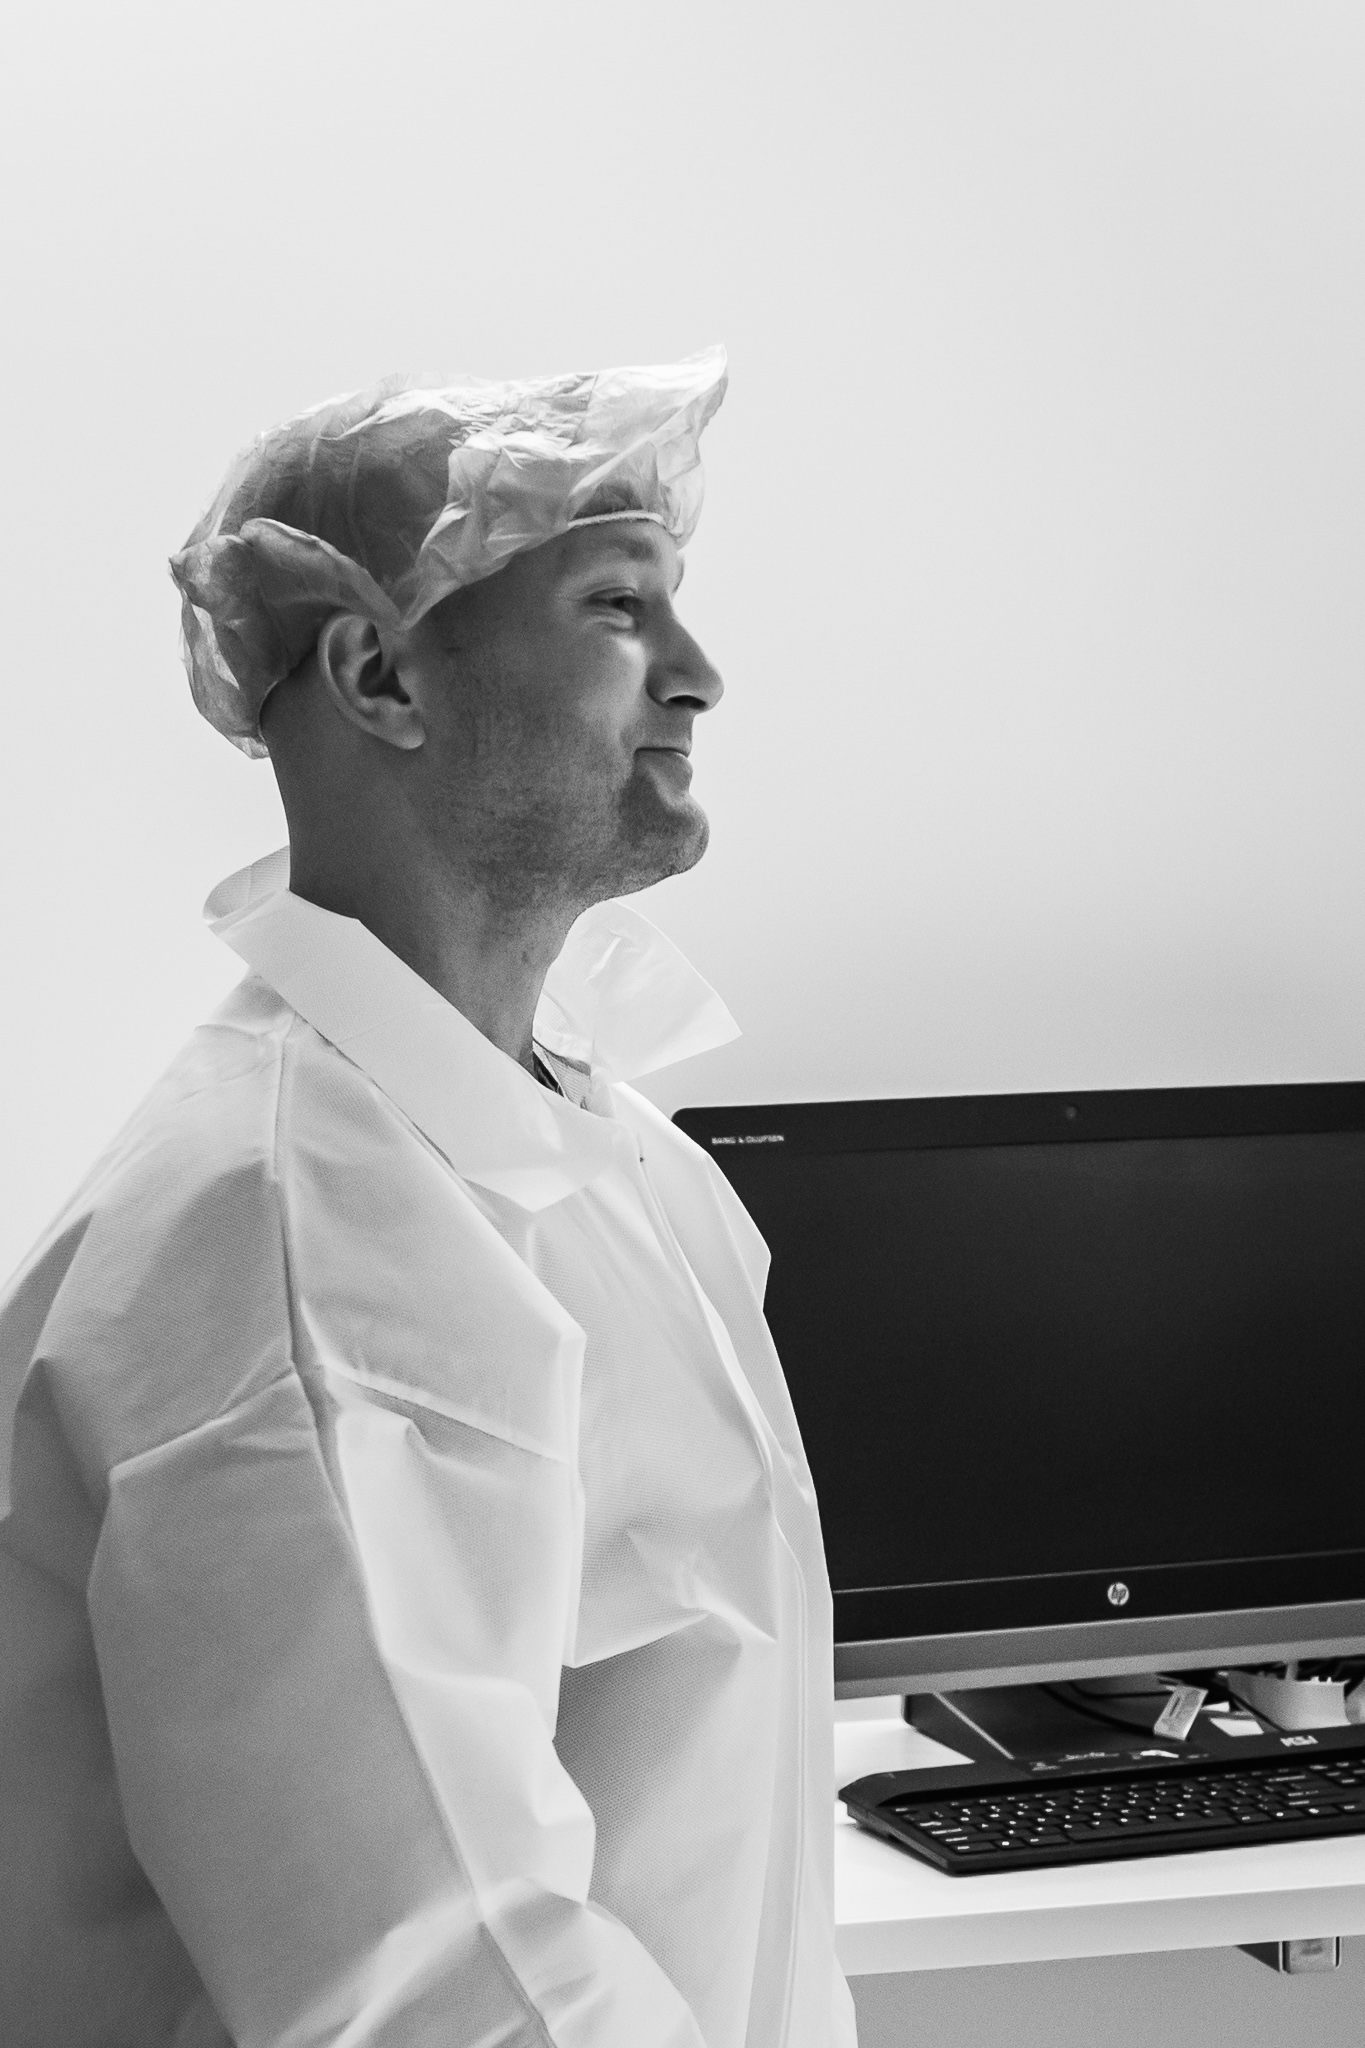 Black and white photo of a man with surgery scrubs.